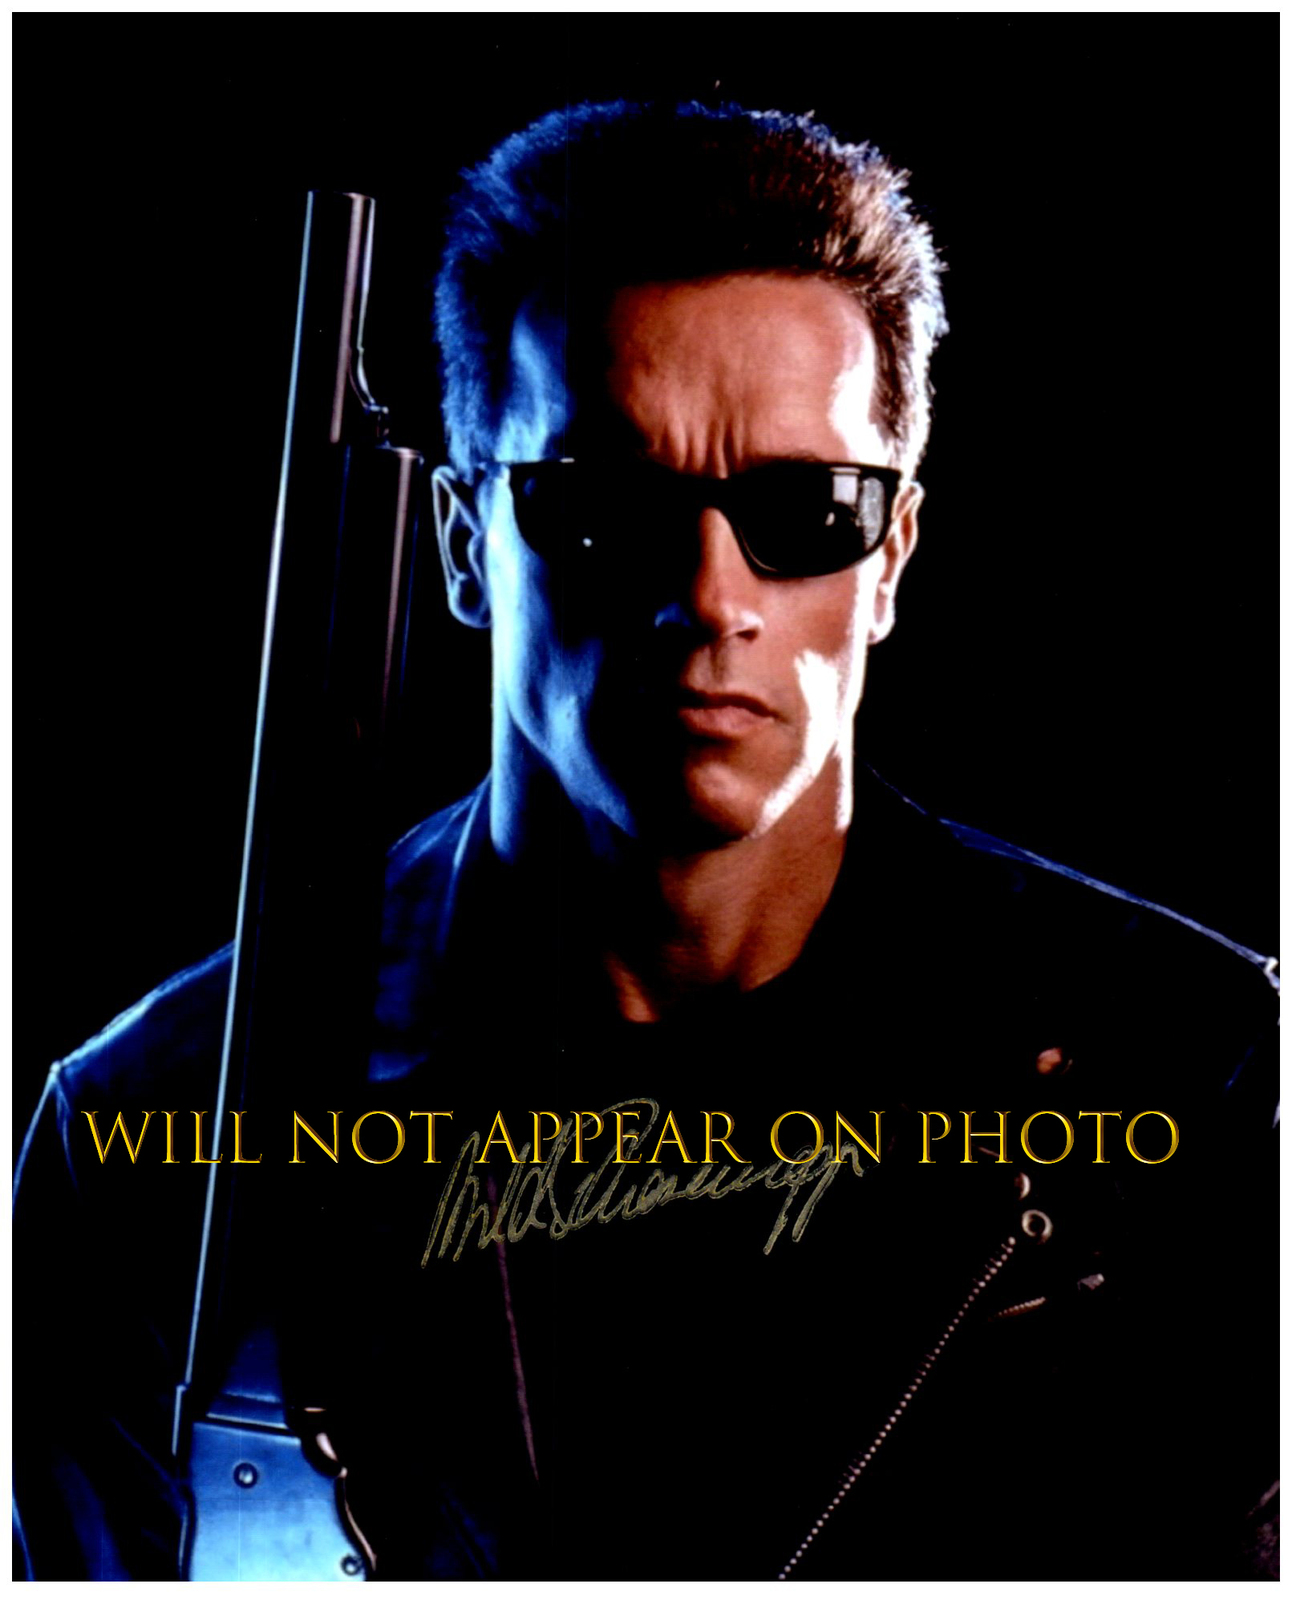 Primary image for ARNOLD SCHWARZENEGGER Signed Autographed Photo w/ Certificate of Authenticity 05